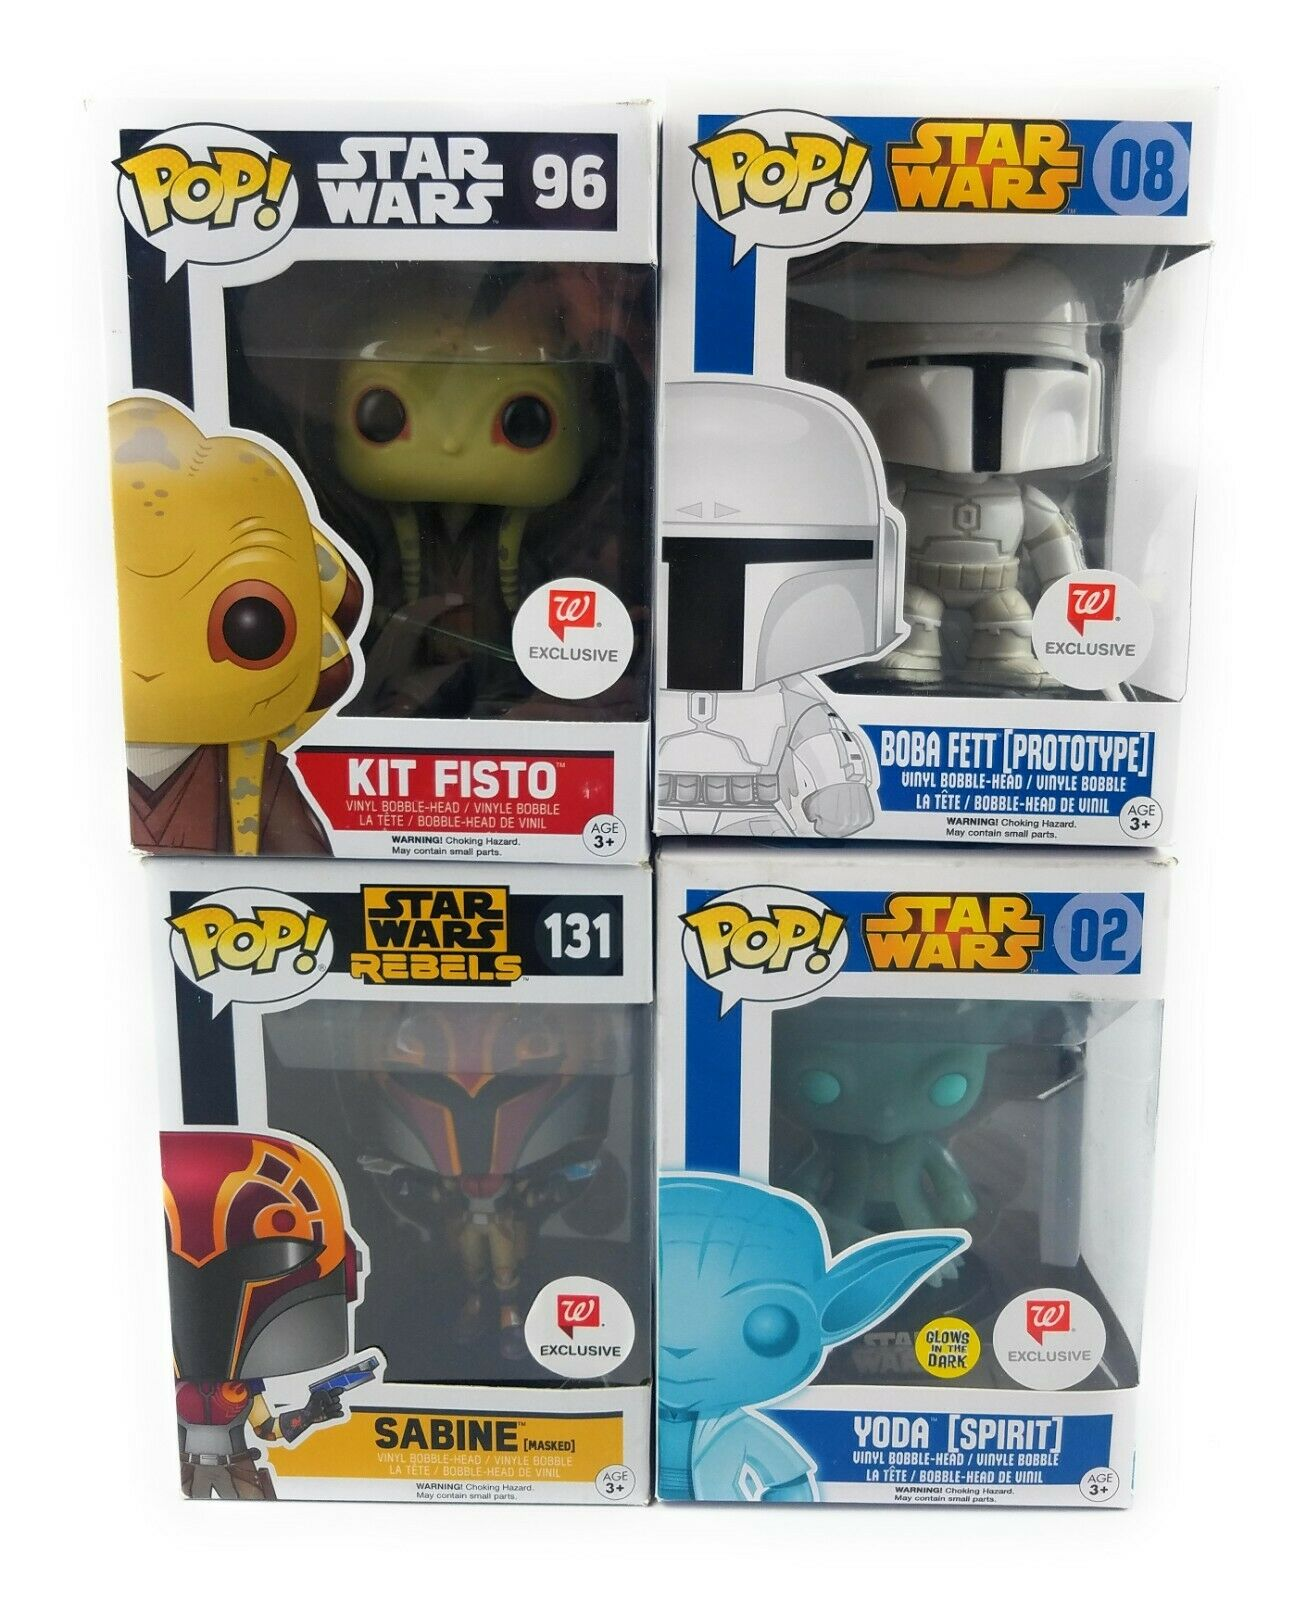 Star Wars Funko Pop 4 Pop Collection Walgreens Exclusive Damaged Box